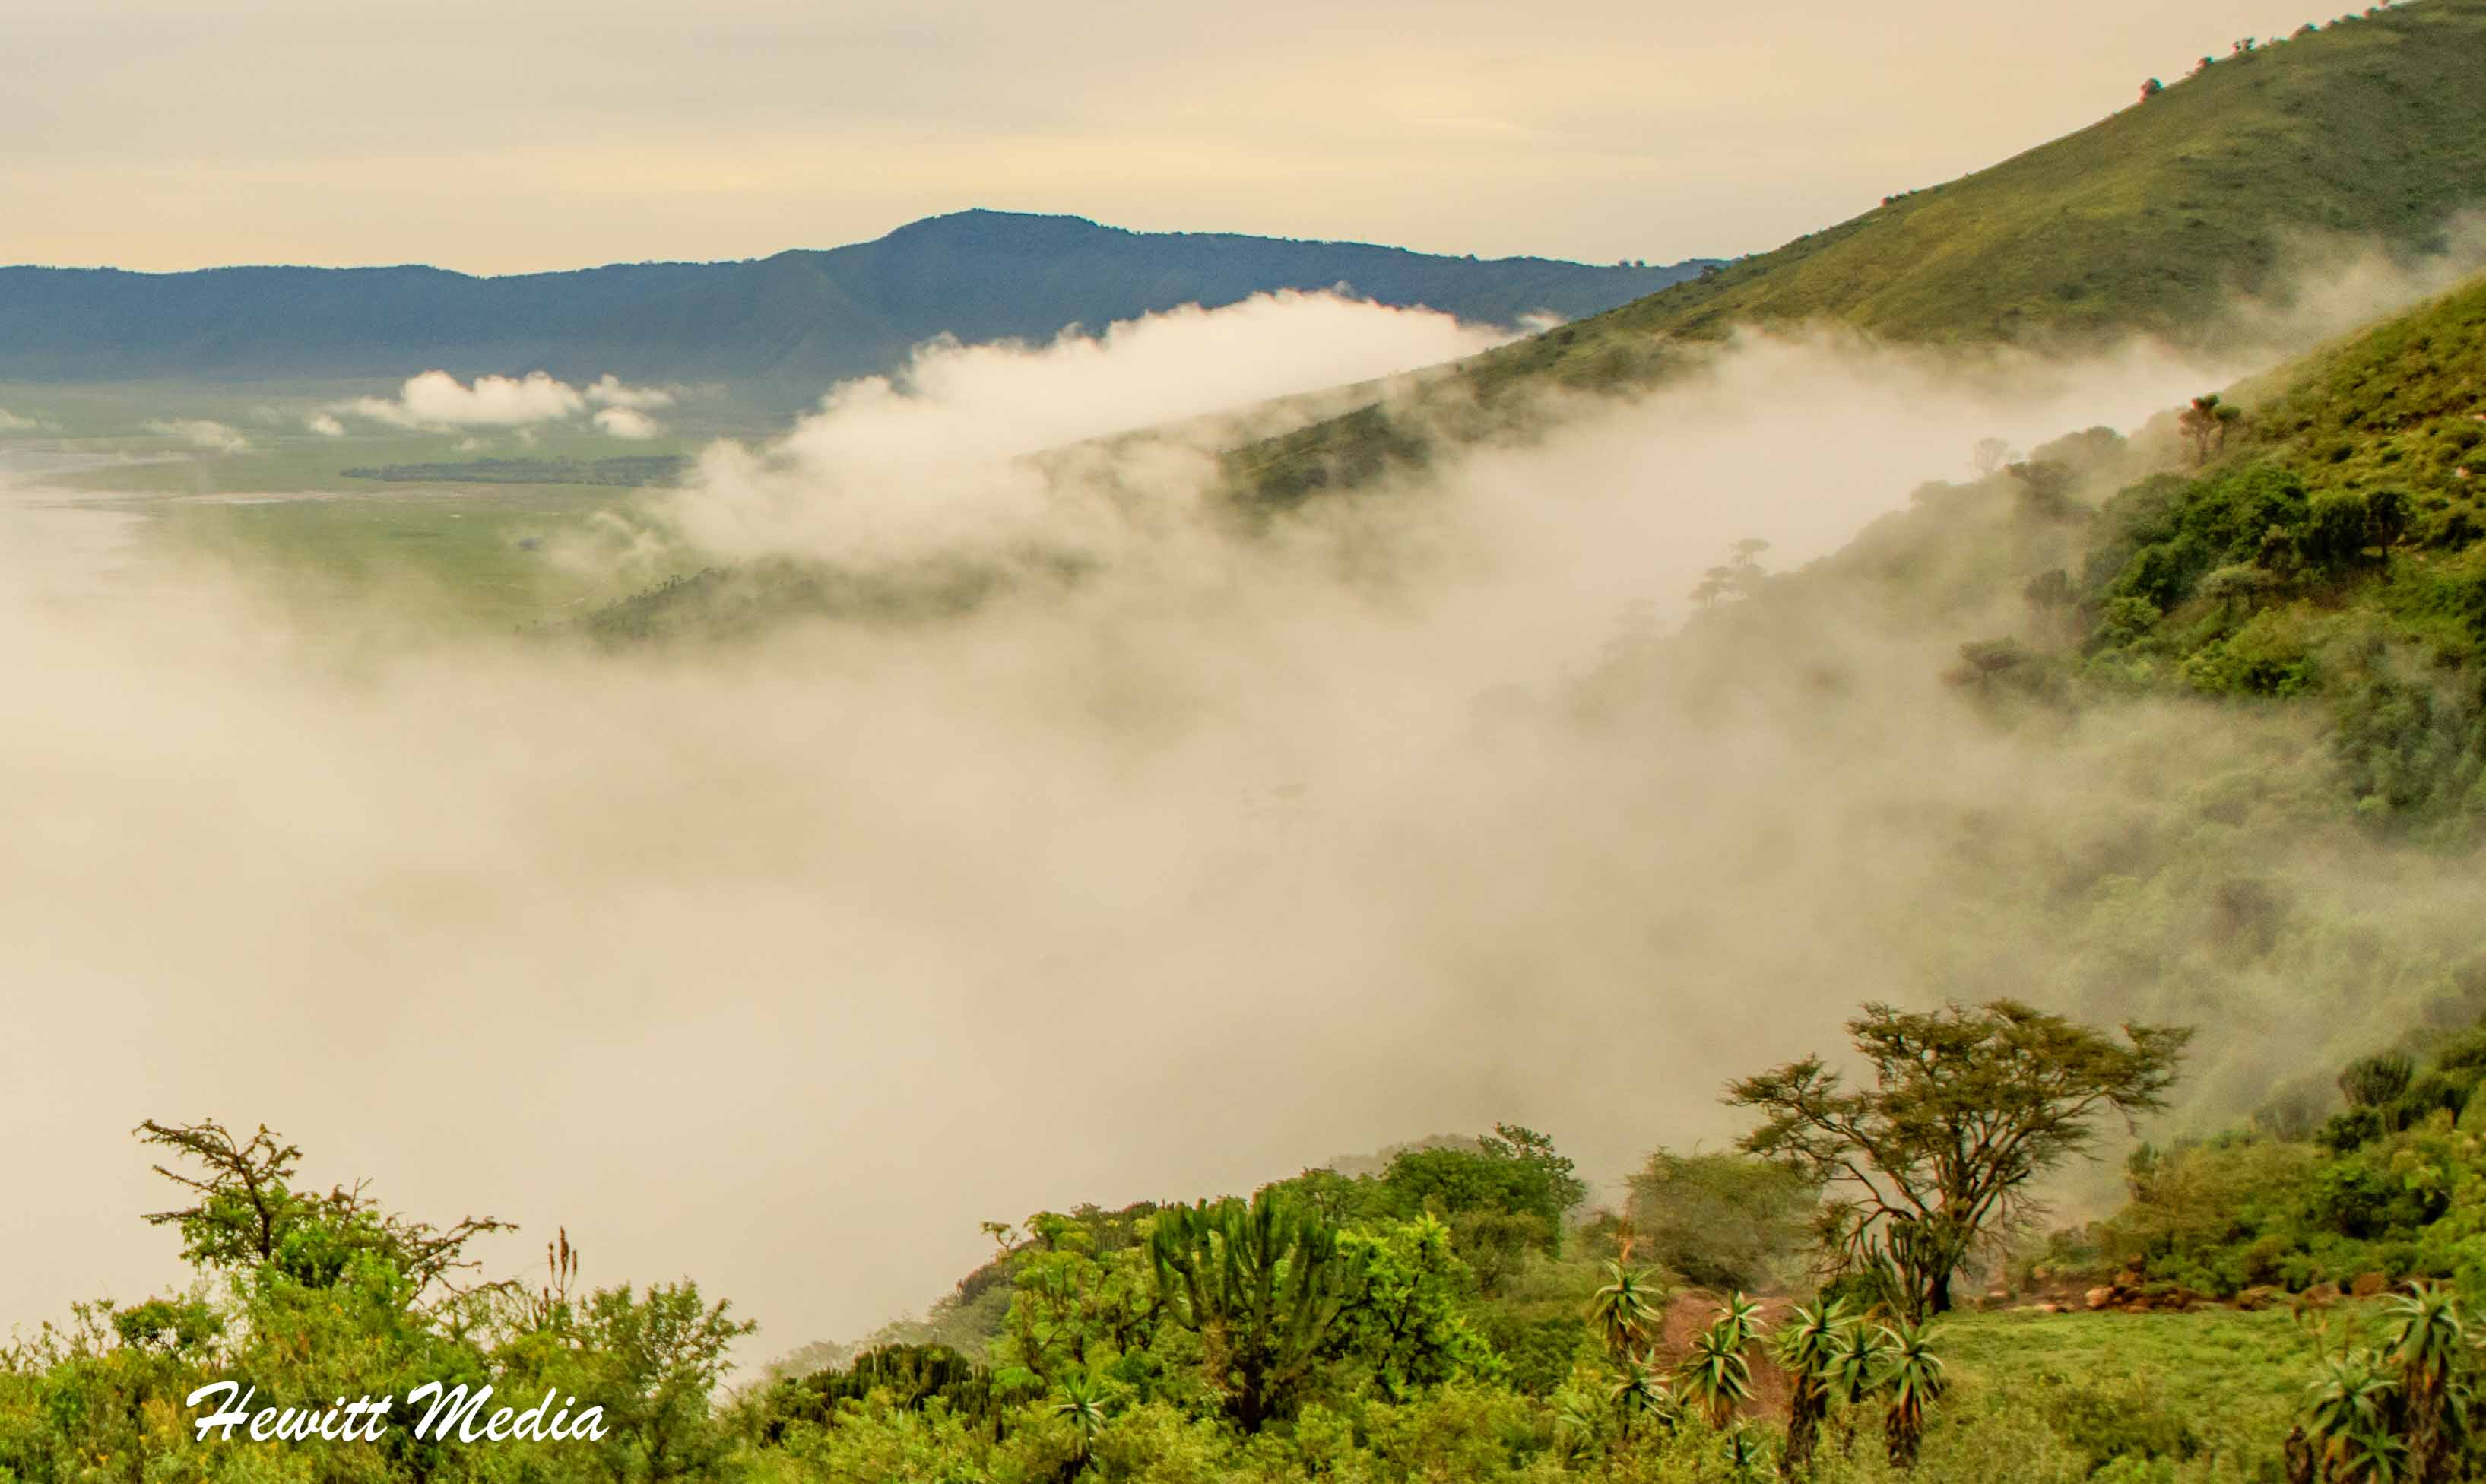 The Ngorongoro Crater under morning fog